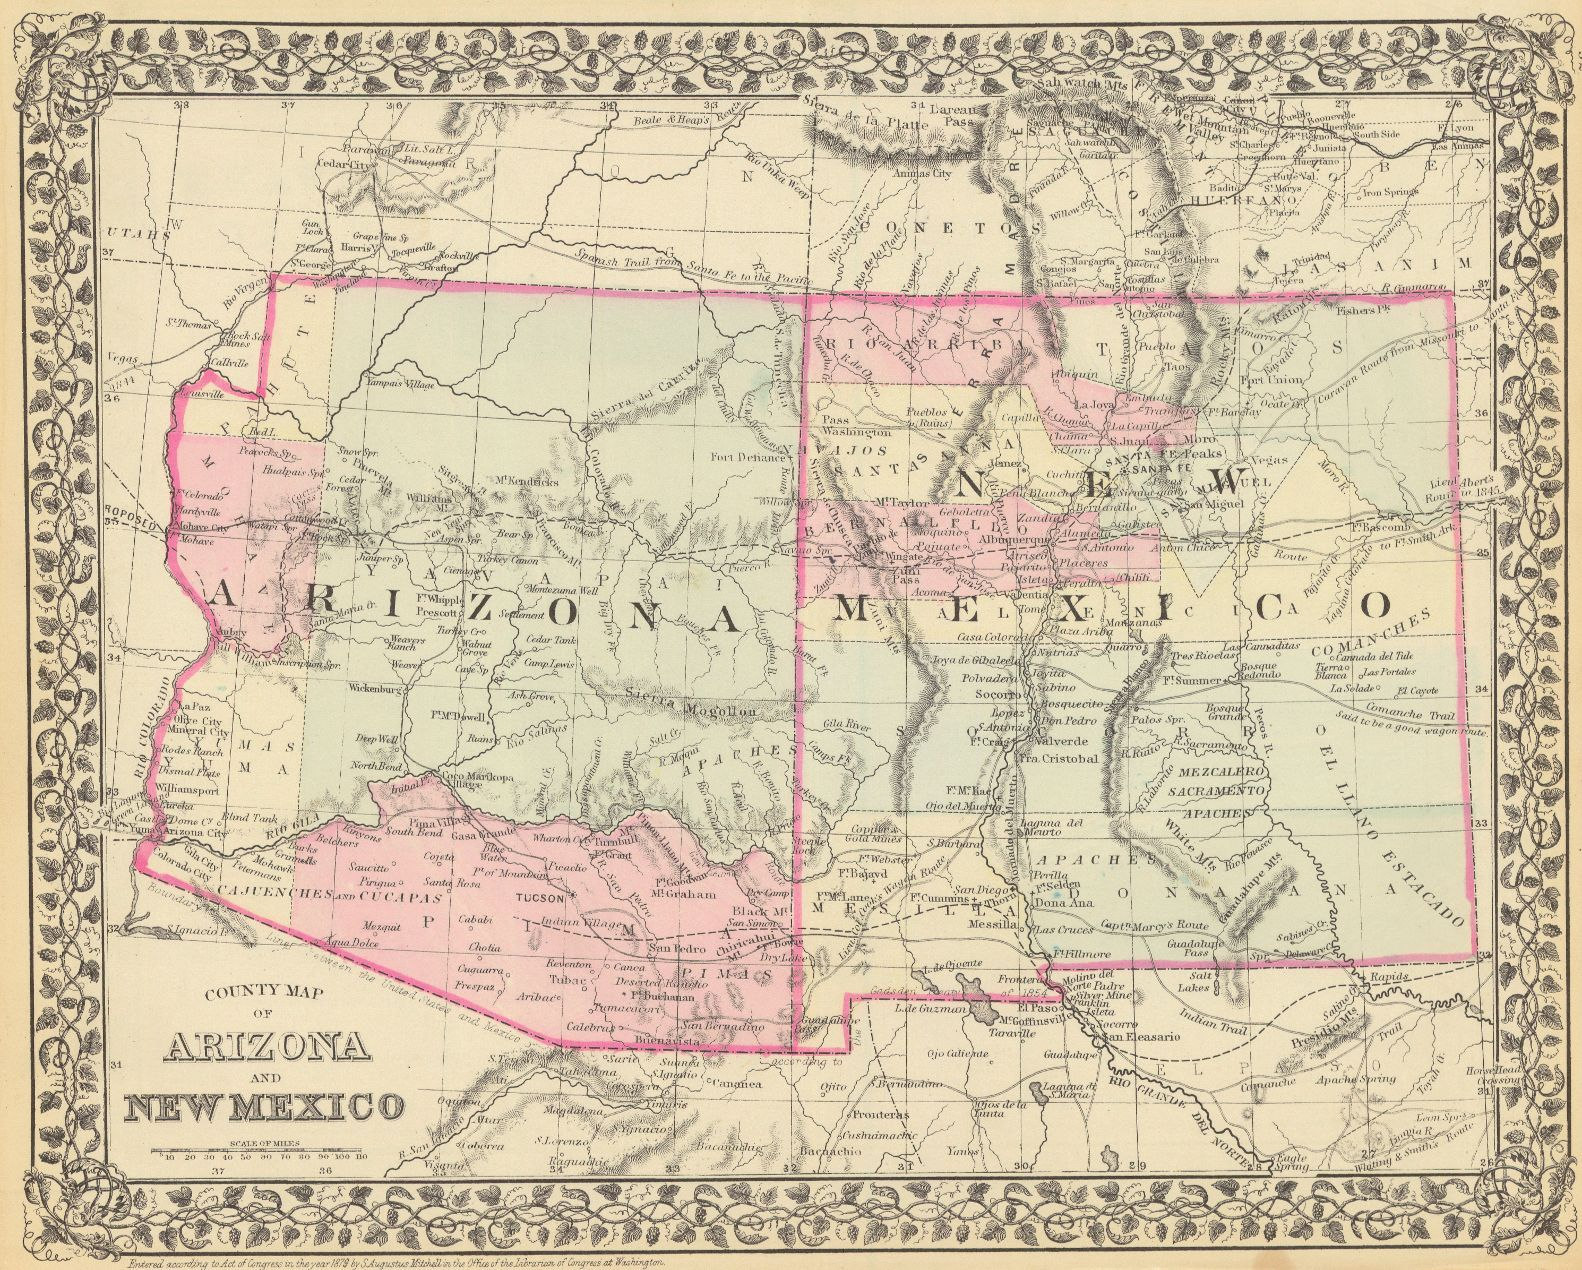 Map Of Just Arizona.County Map Of Arizona And New Mexico Mitchell S A 1879 Colored